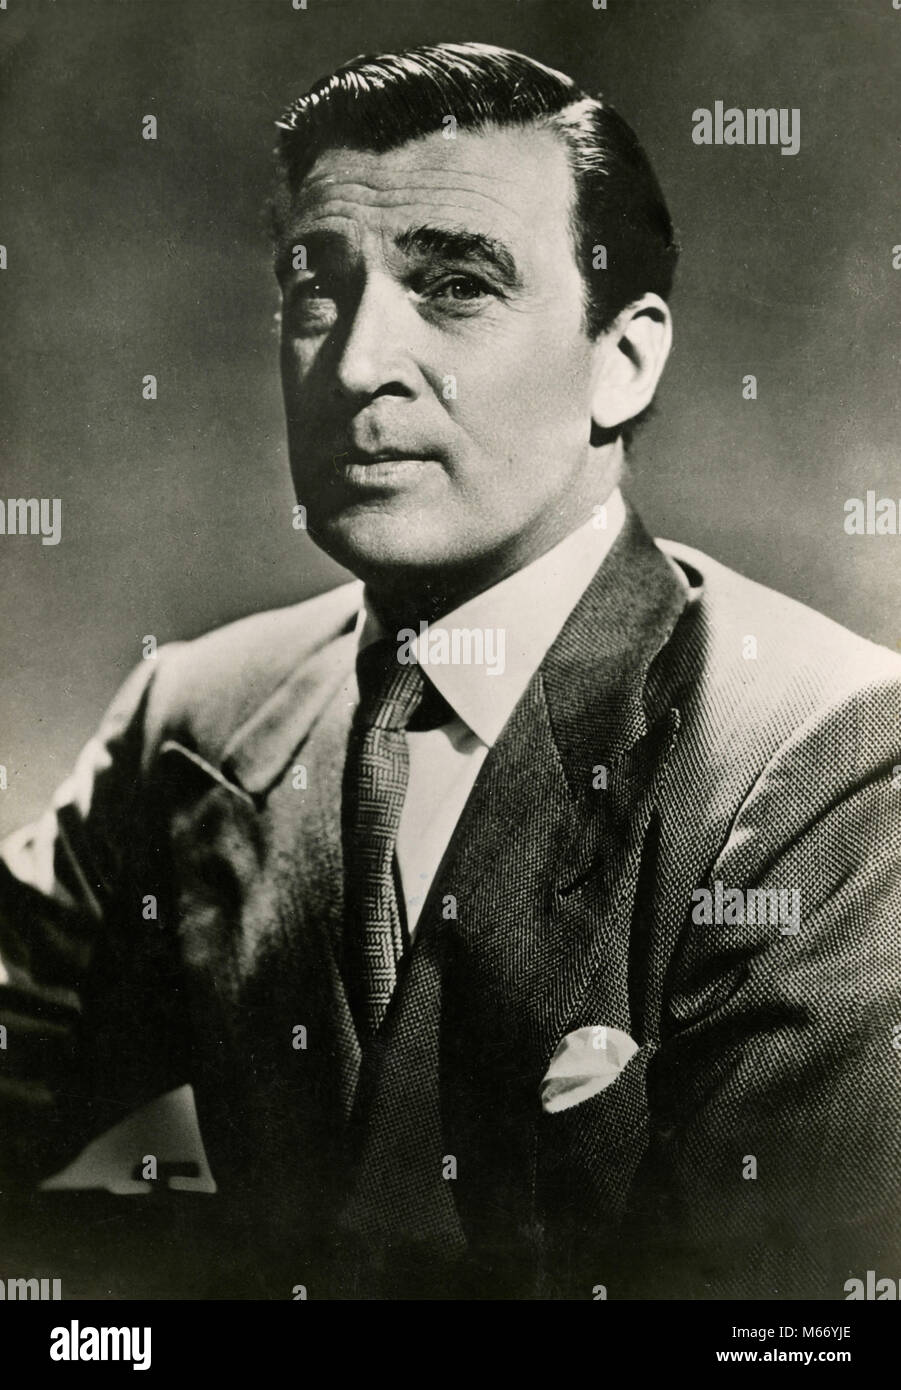 Canadian actor Walter Pidgeon, 1930s - Stock Image